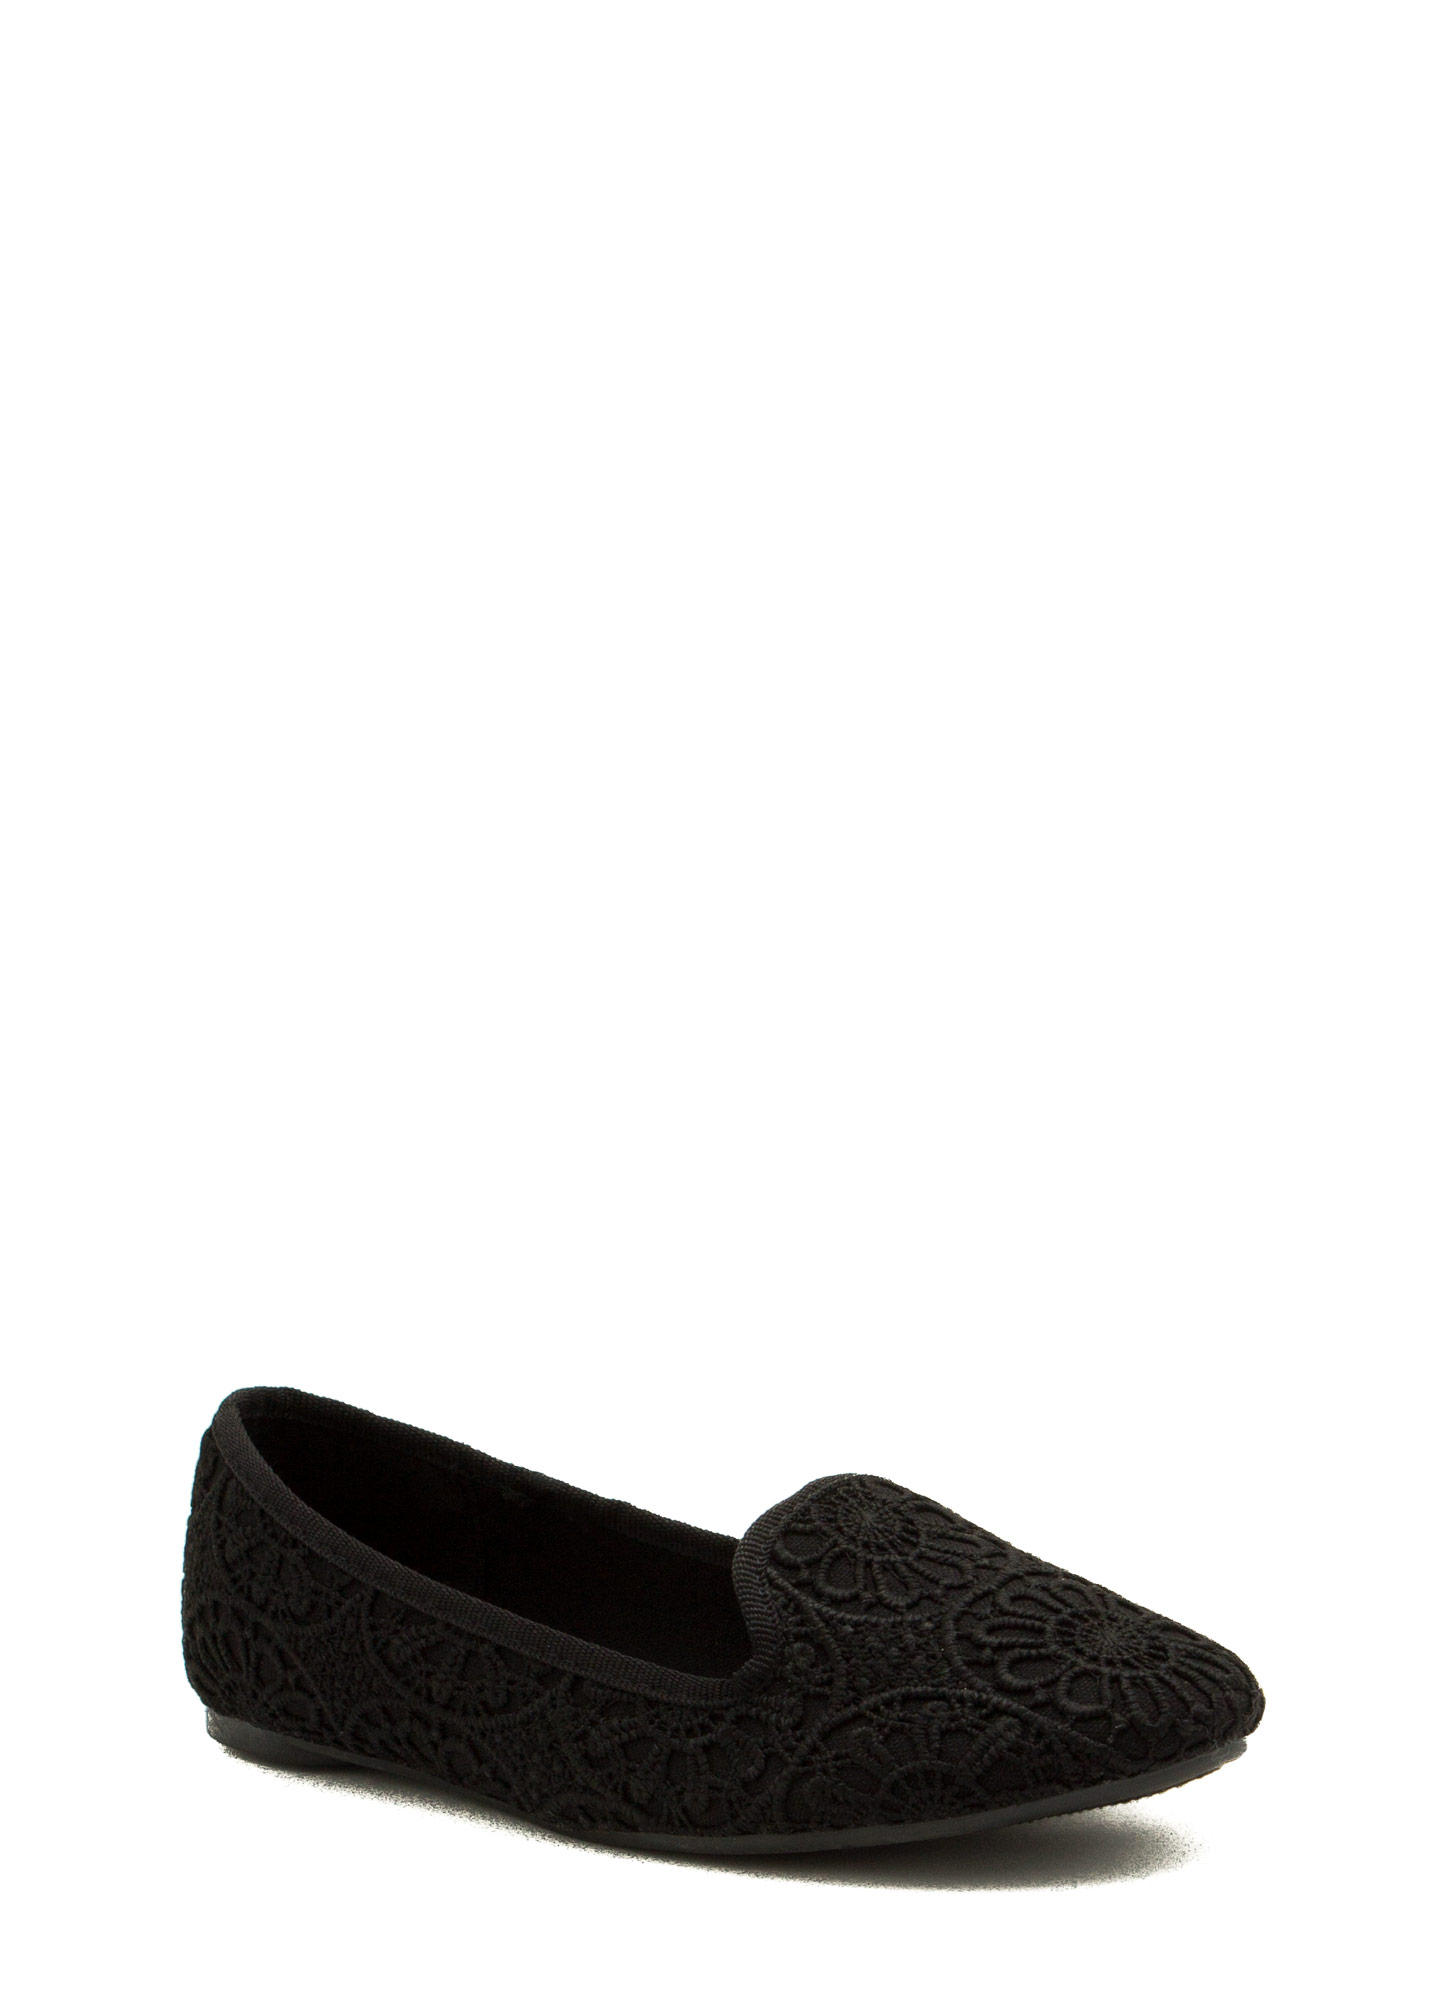 Medallion Crochet Smoking Flats BLACK